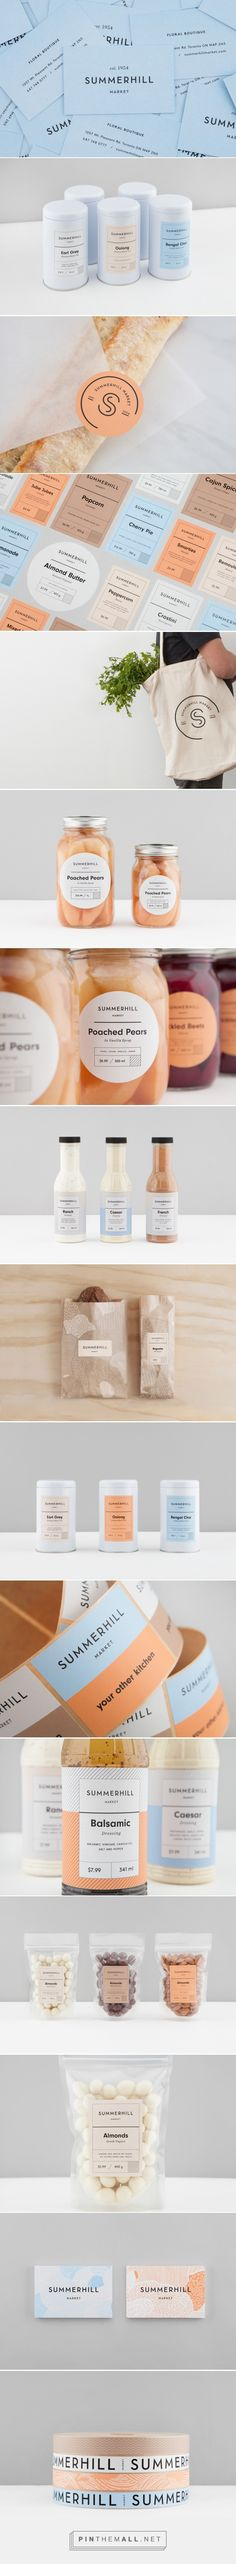 Summerhill Market Food Branding and Packaging by Blok Design   Fivestar Branding Agency – Design and Branding Agency & Curated Inspiration Gallery